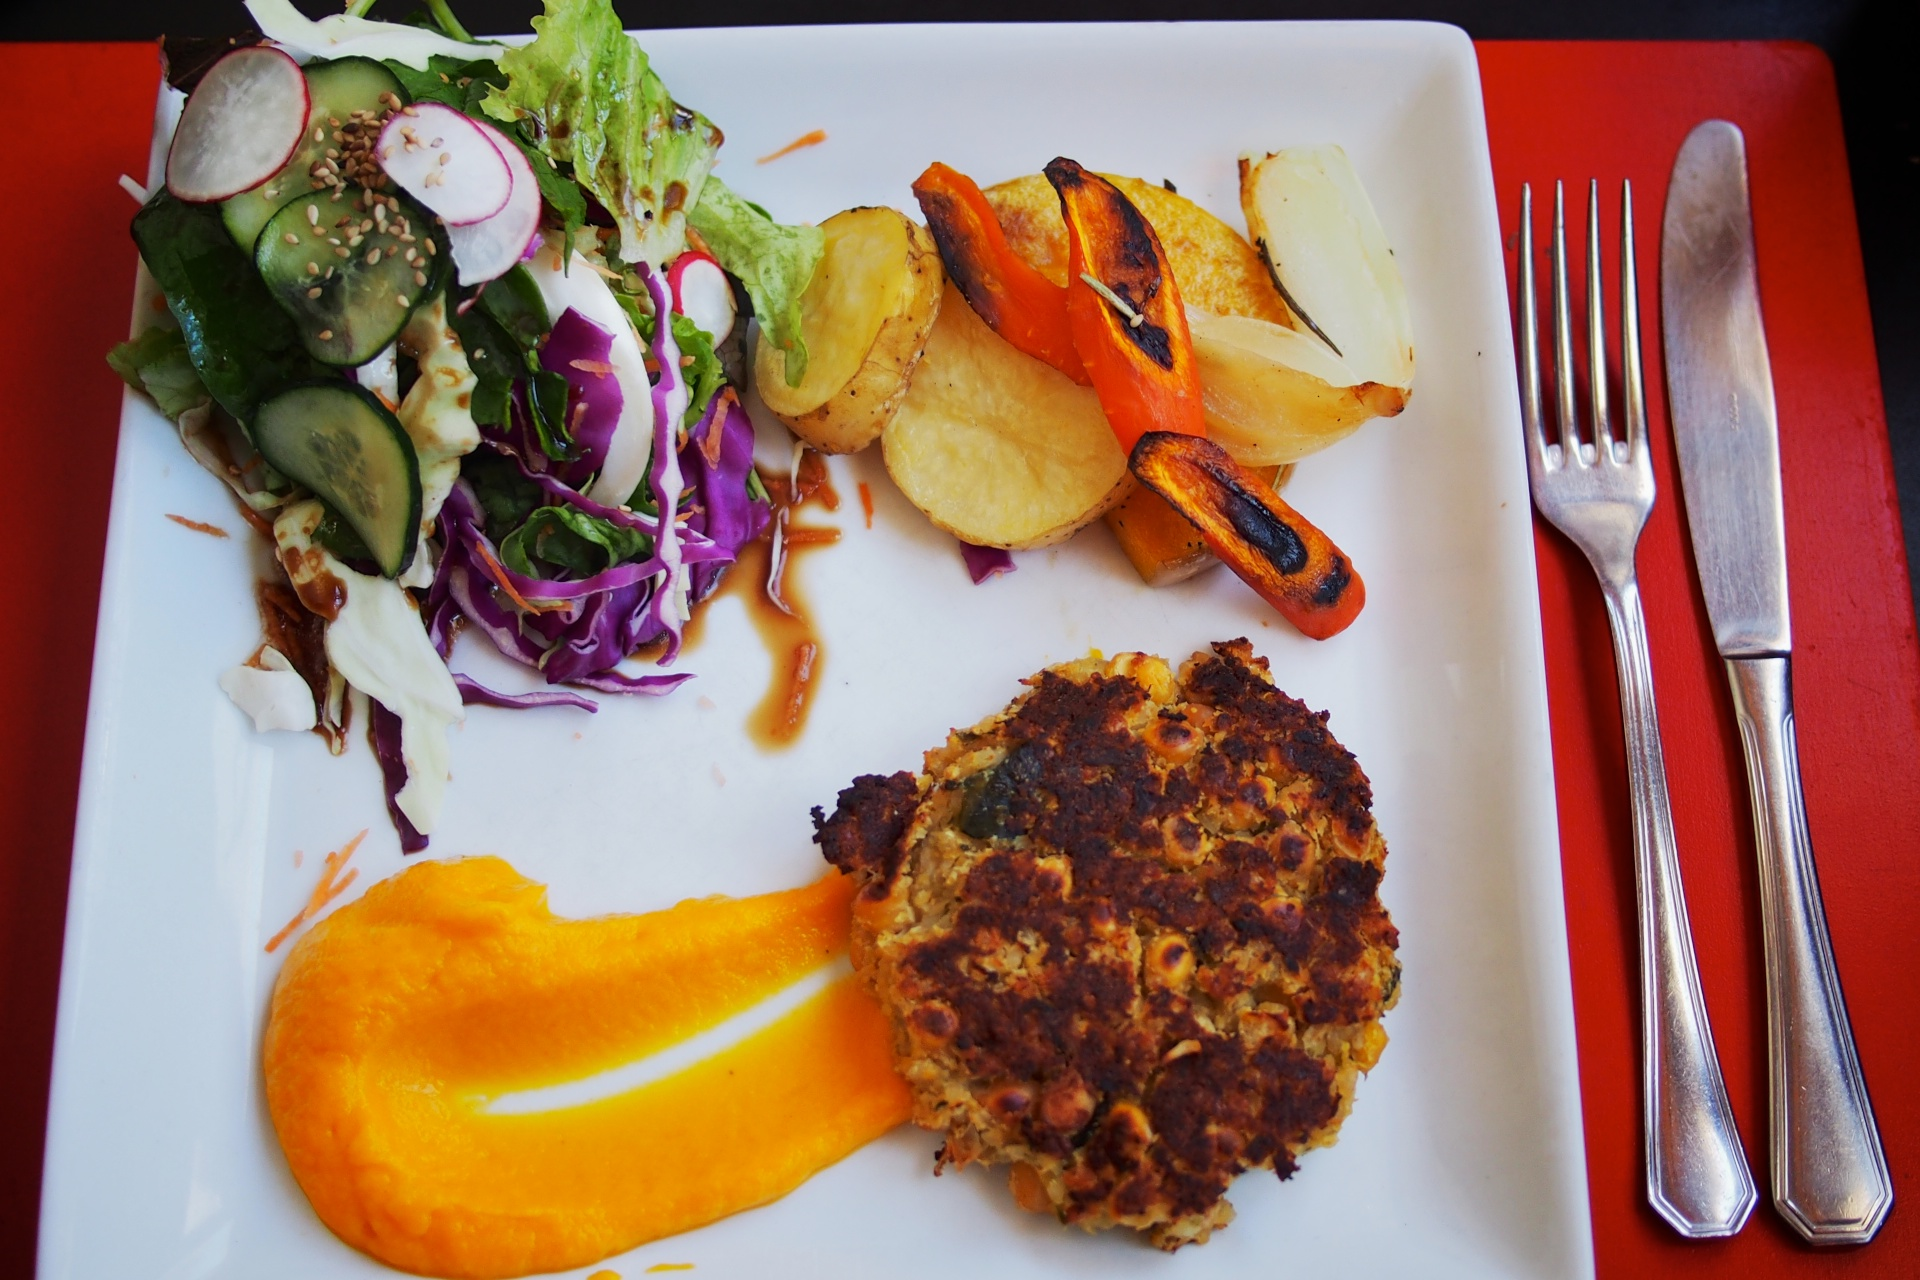 Chickpea patty with roasted veggies, squash purée and a salad from Casa Covita